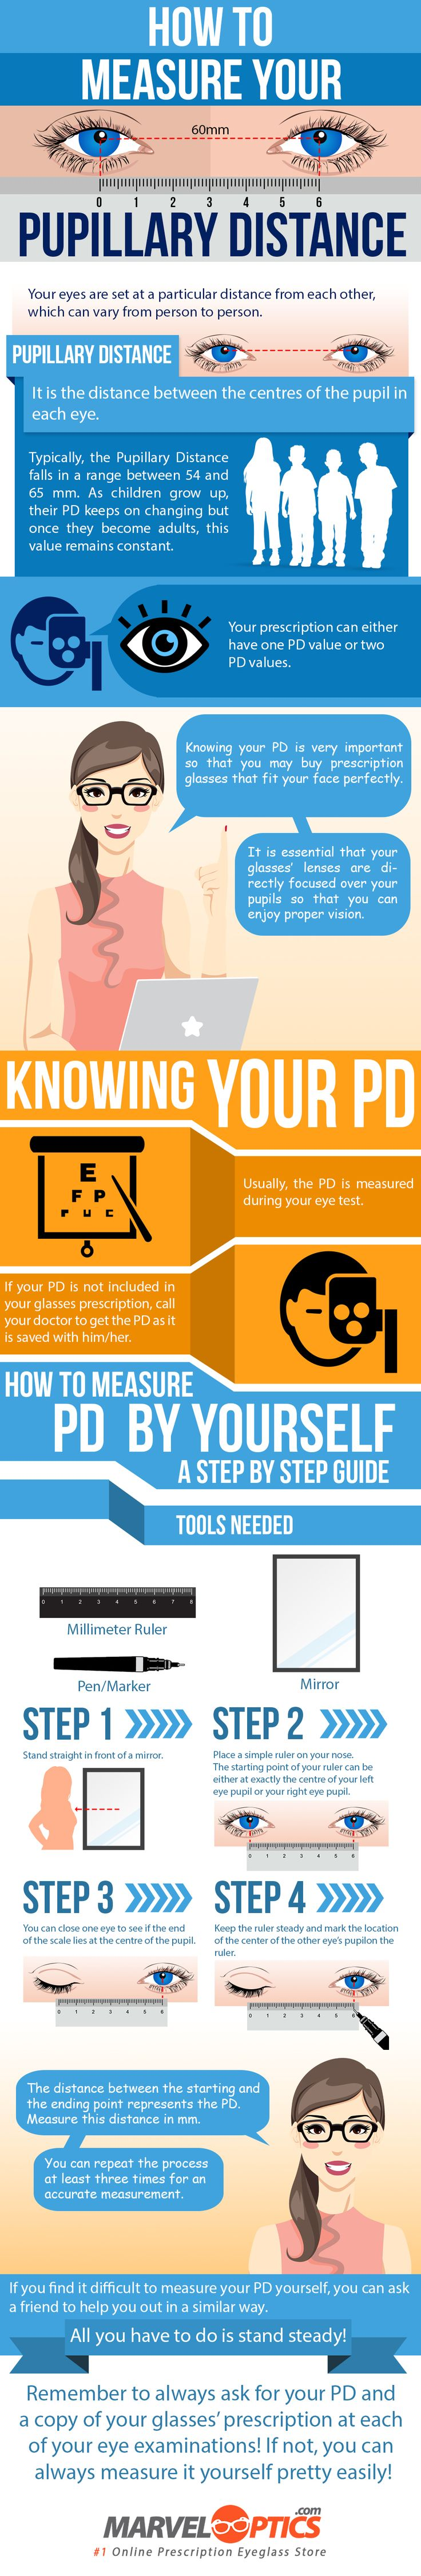 How to Measure Your PD - Do you fancy an infographic?  There are a lot of them online, but if you want your own please visit http://www.linfografico.com/prezzi/  Online girano molte infografiche, se ne vuoi realizzare una tutta tua visita http://www.linfografico.com/prezzi/